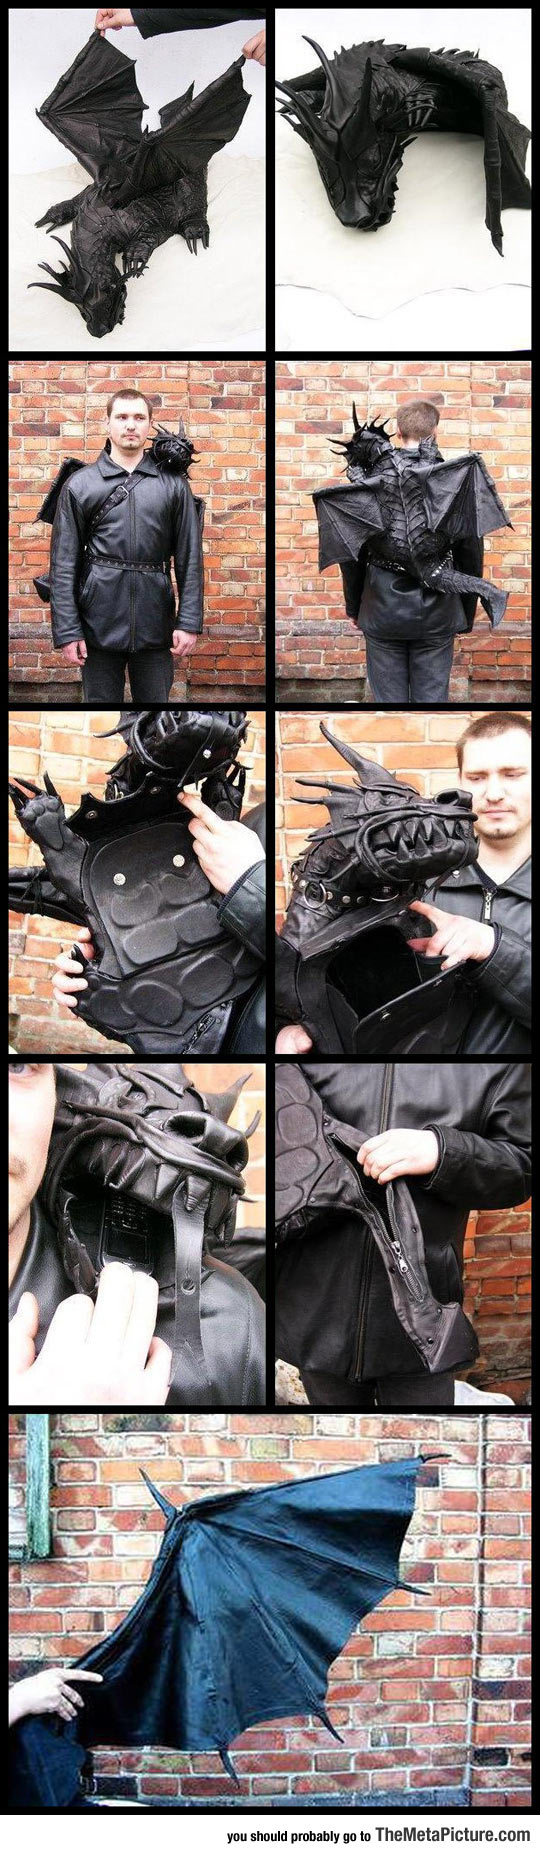 The Dragon Bag